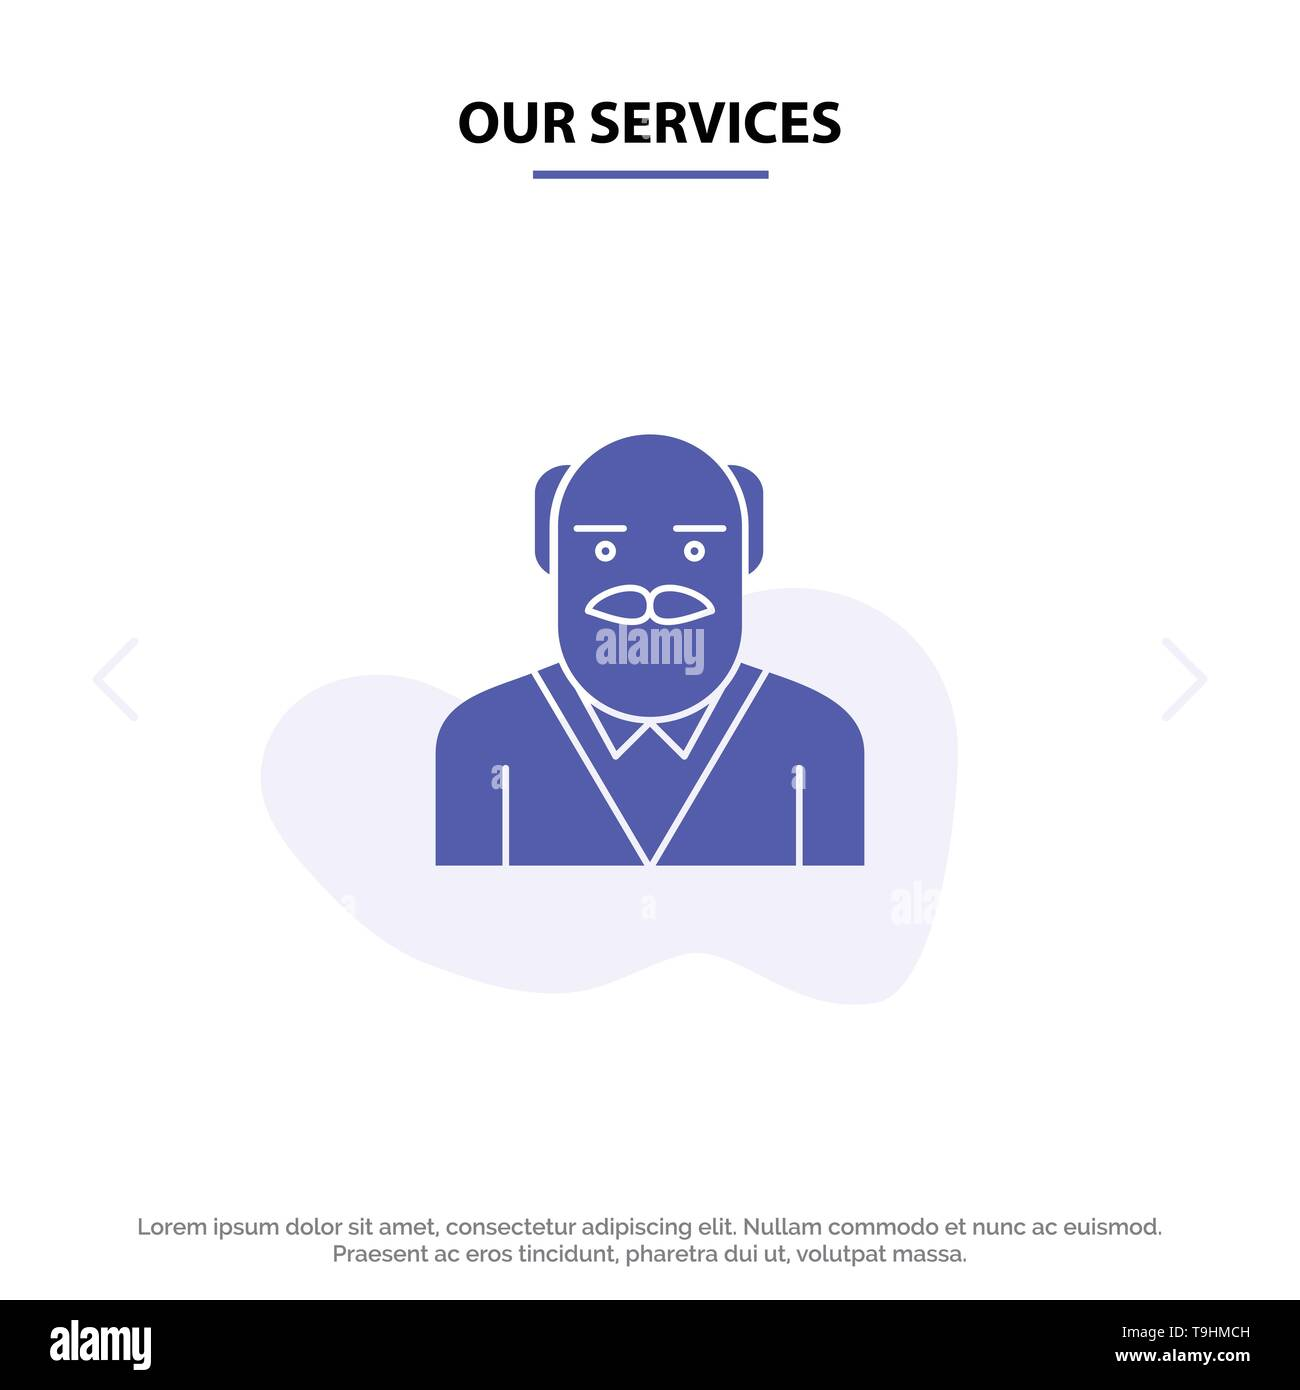 Our Services Grandpa, Father, Old Man, Uncle Solid Glyph Icon Web card Template - Stock Image